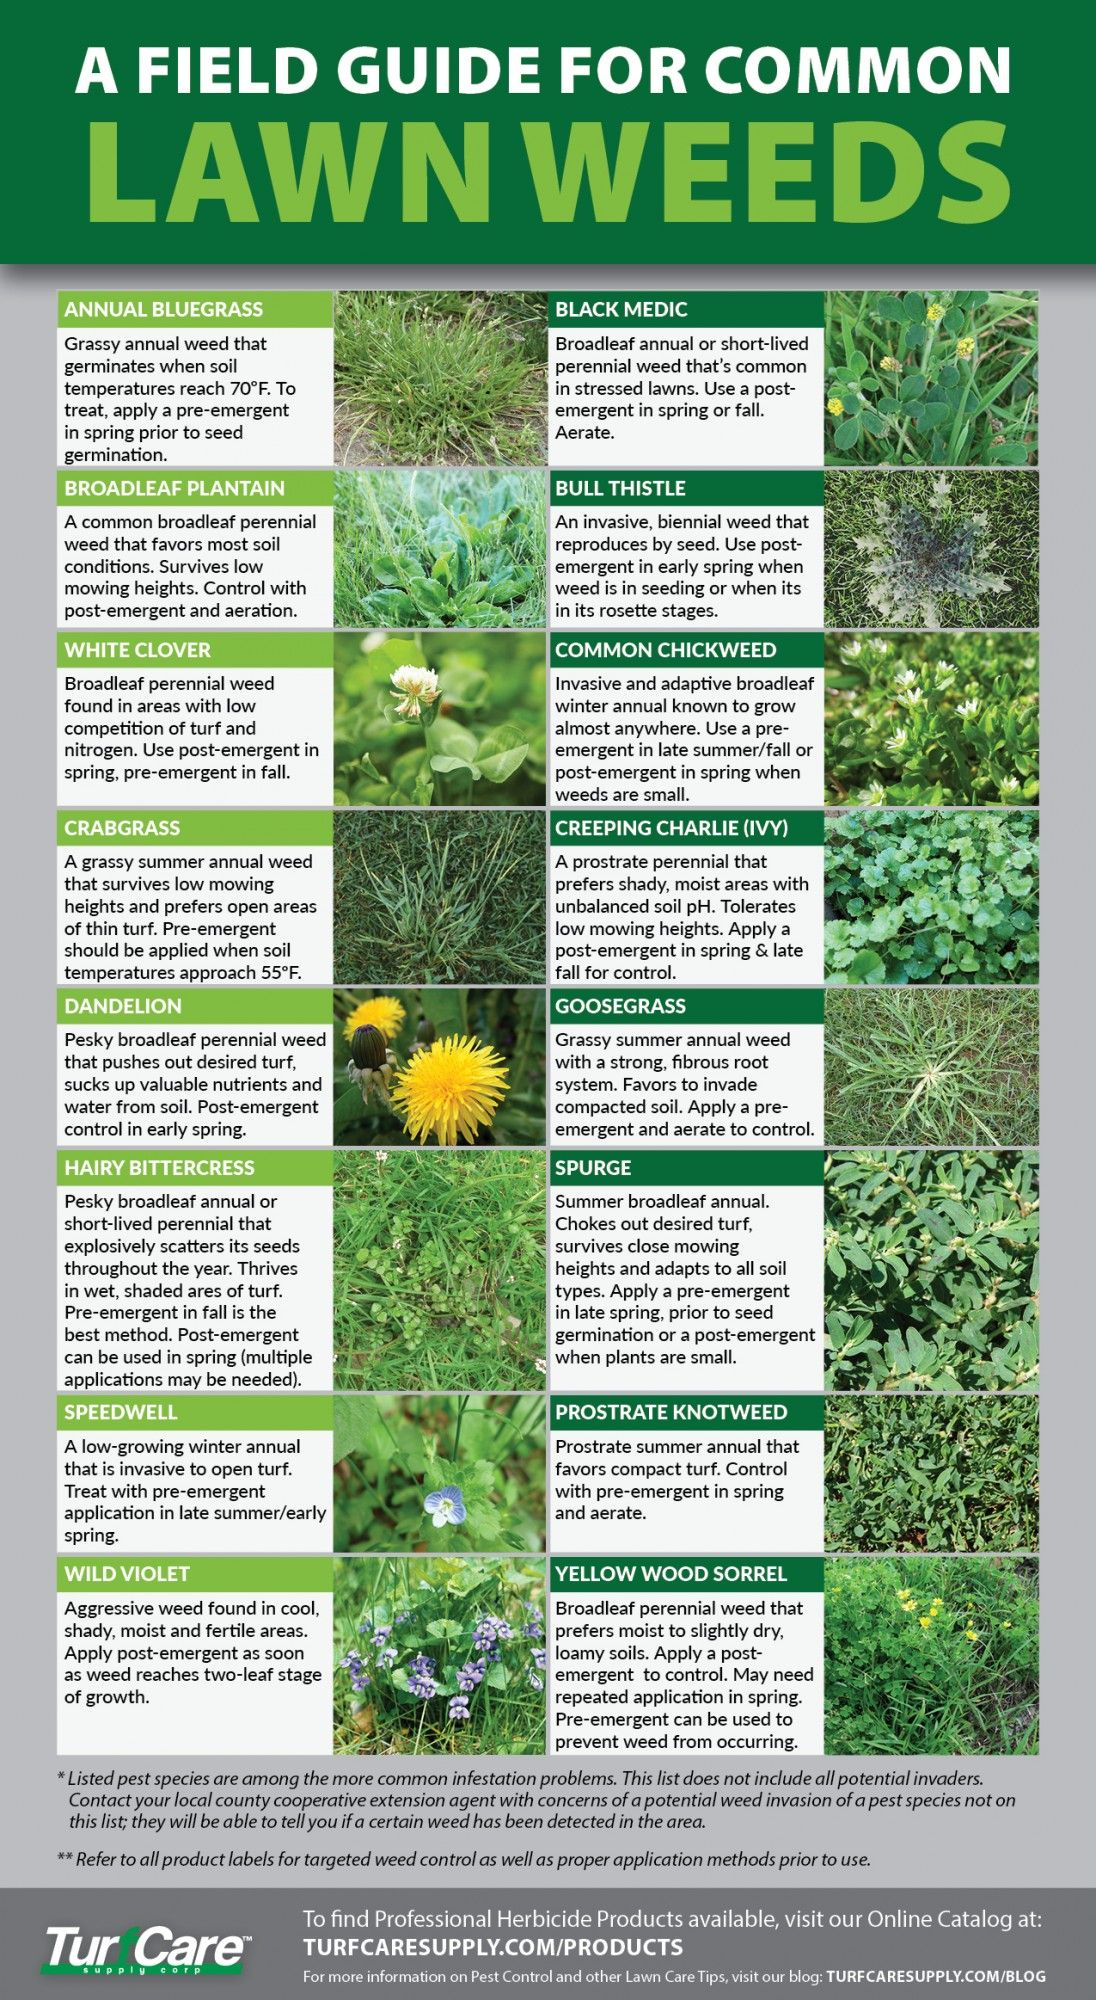 A Field Guide for Common Lawn Weeds - Turf Care Supply